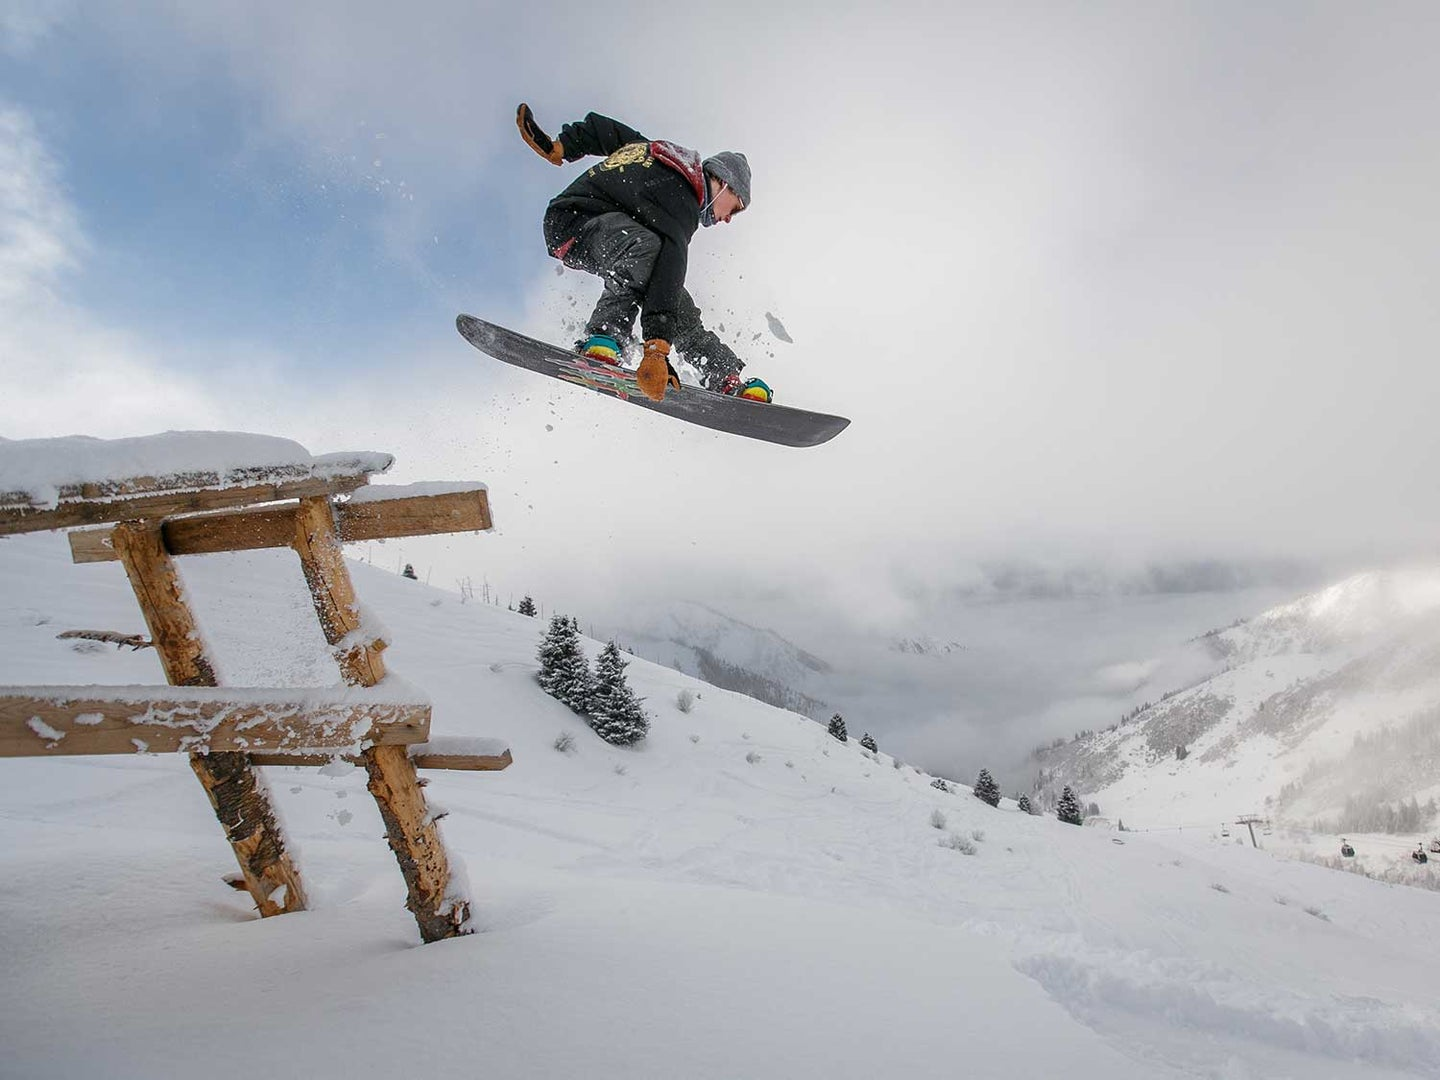 A good pair of snowboard pants will keep you warm, dry, and let any sweat or moisture on the inside evaporate out.